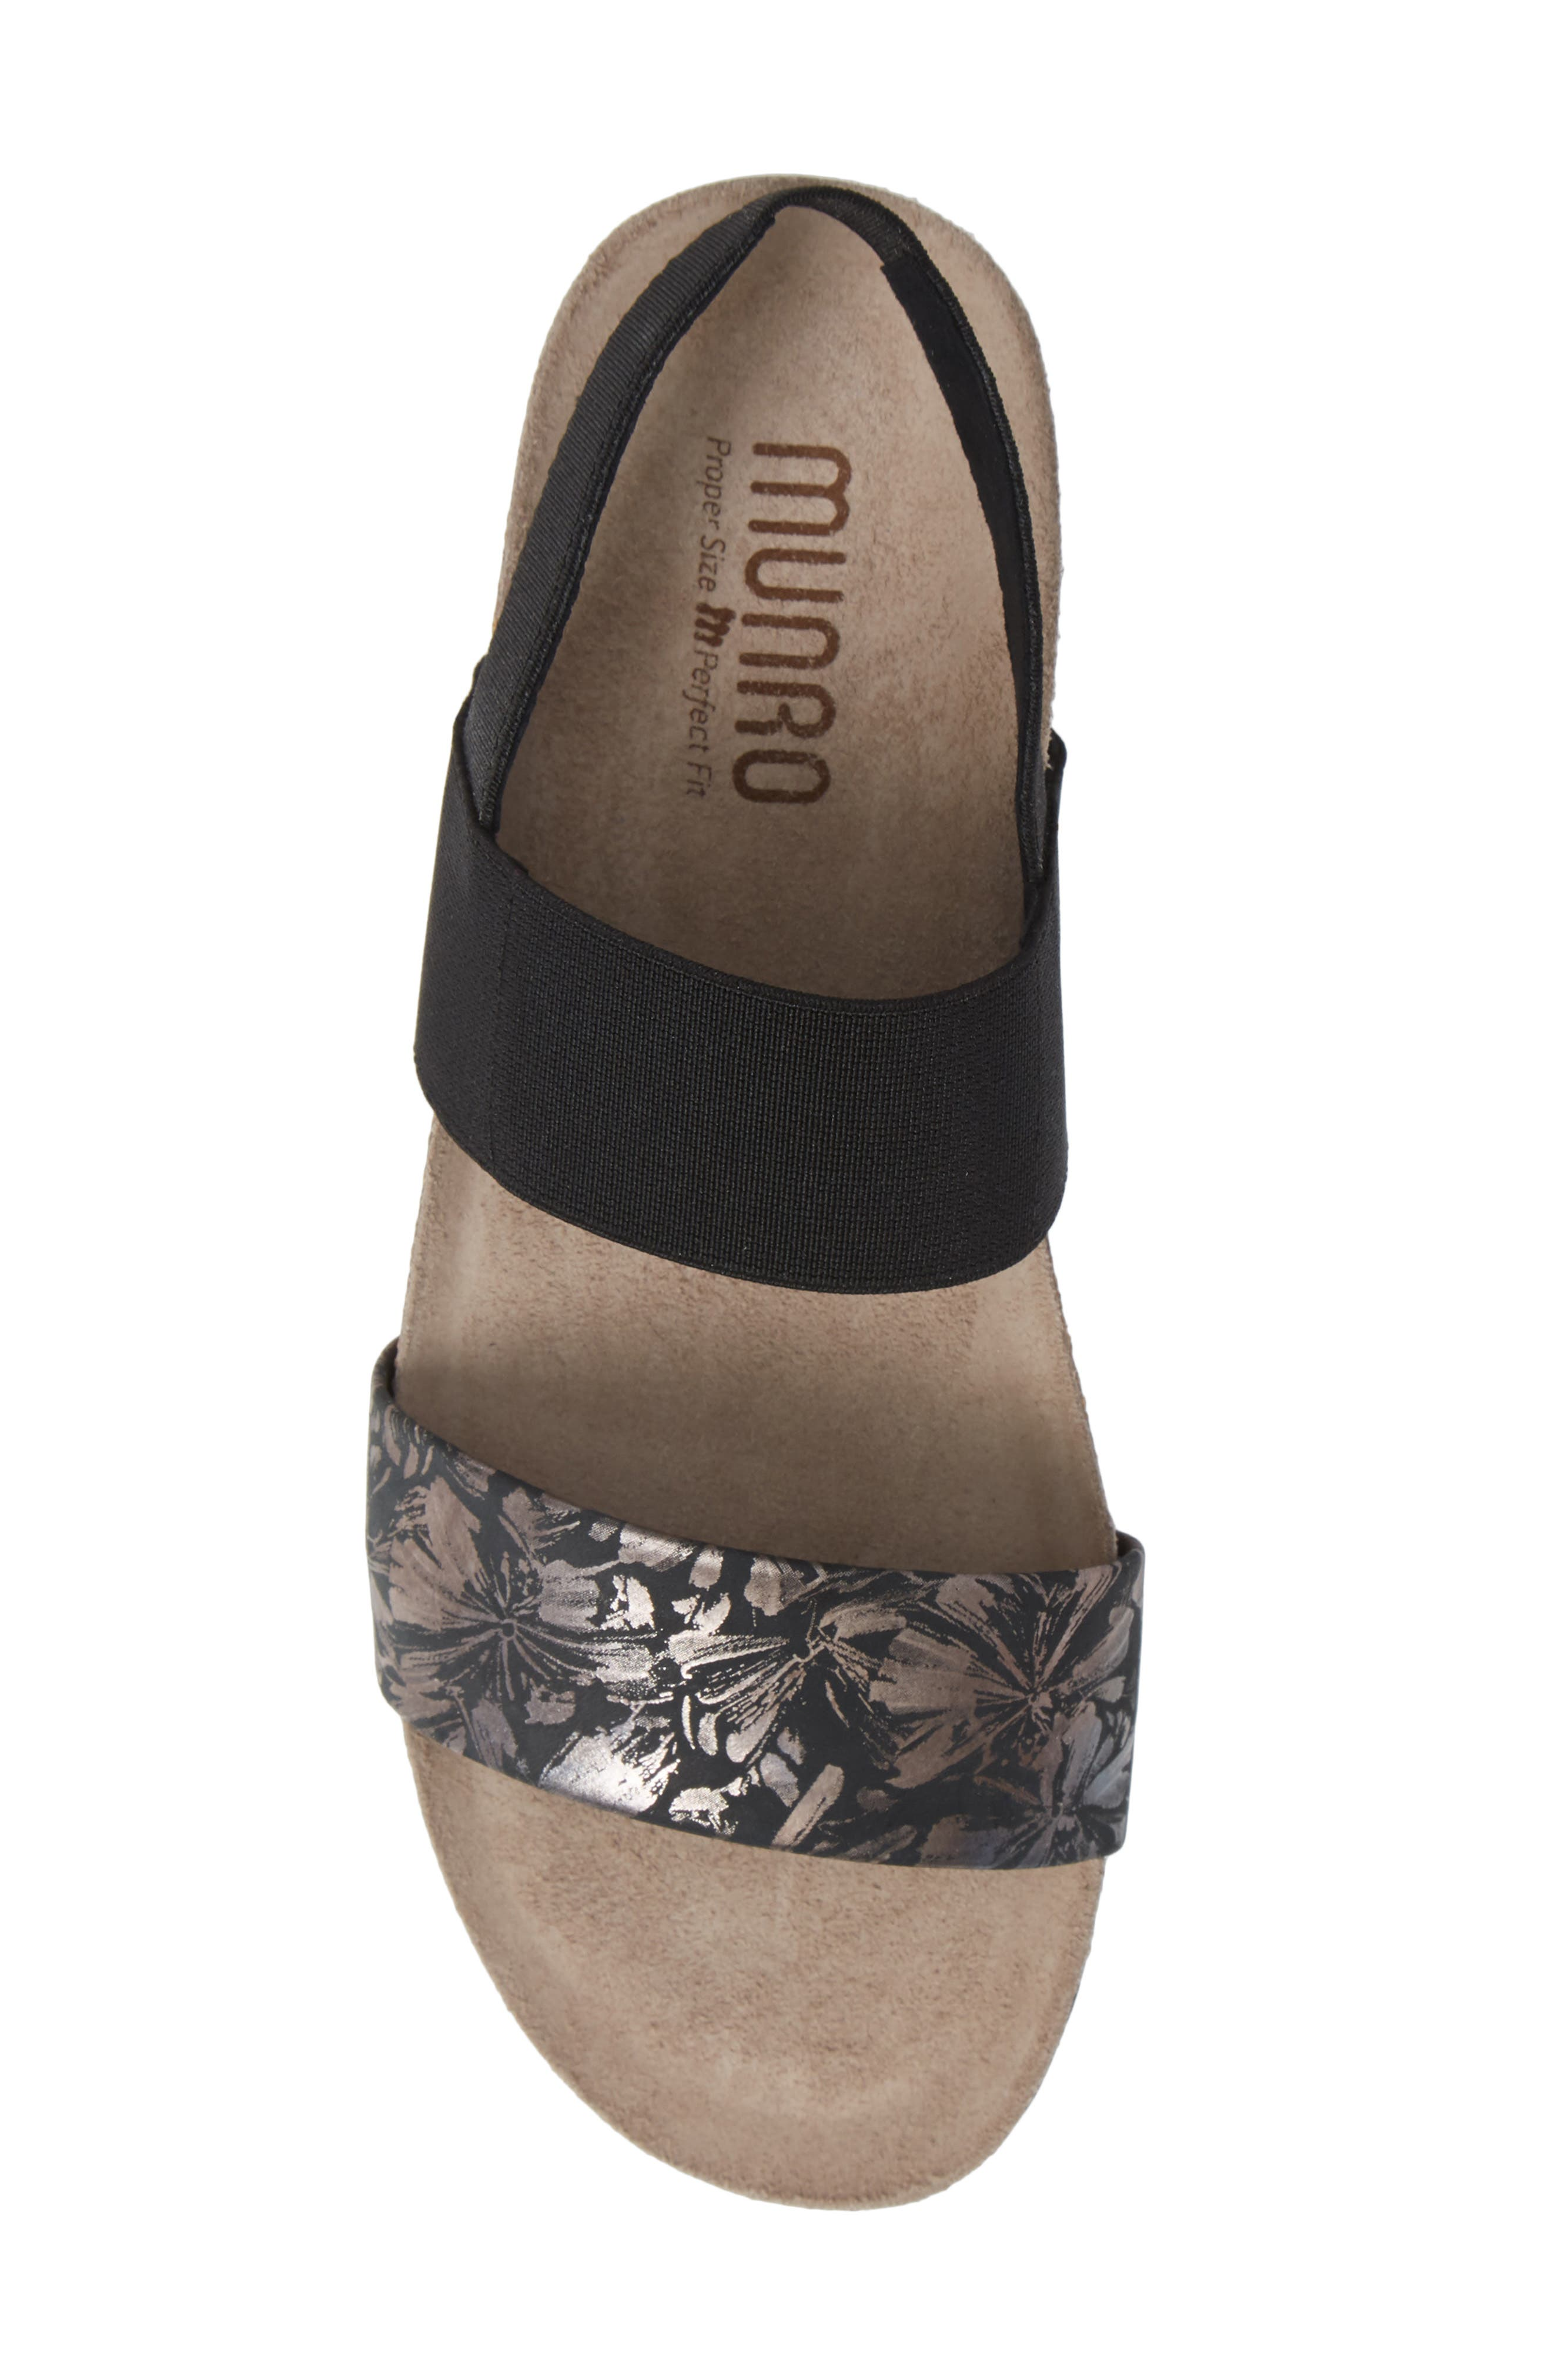 MUNRO, 'Pisces' Sandal, Alternate thumbnail 5, color, DARK FLORAL PRINT LEATHER